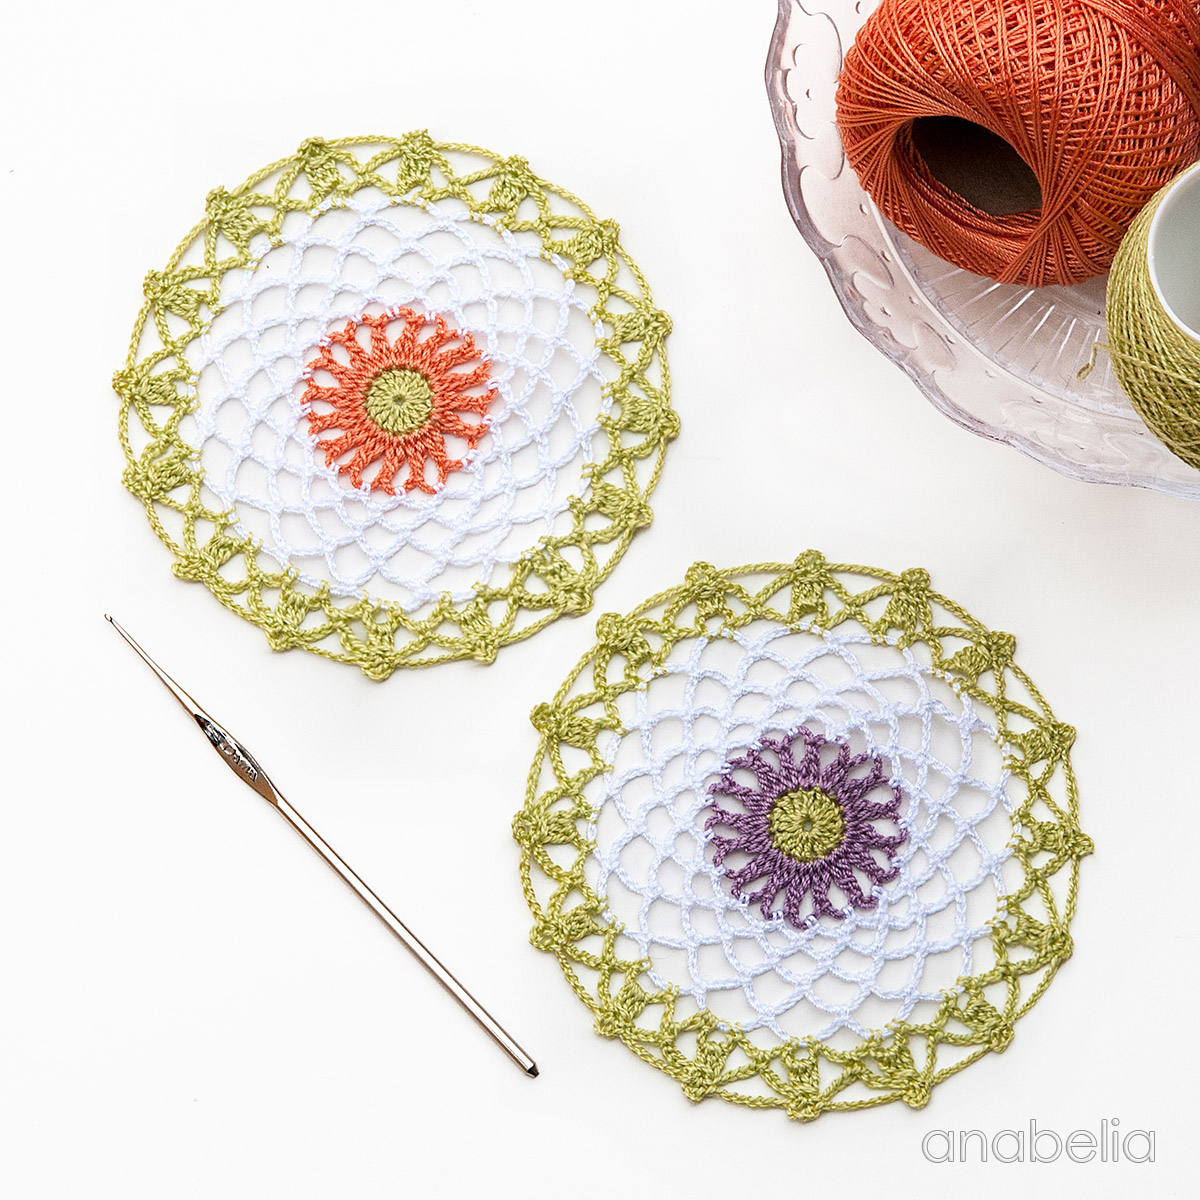 15 minutes made crochet doilies, free pattern | Anabelia Craft ...